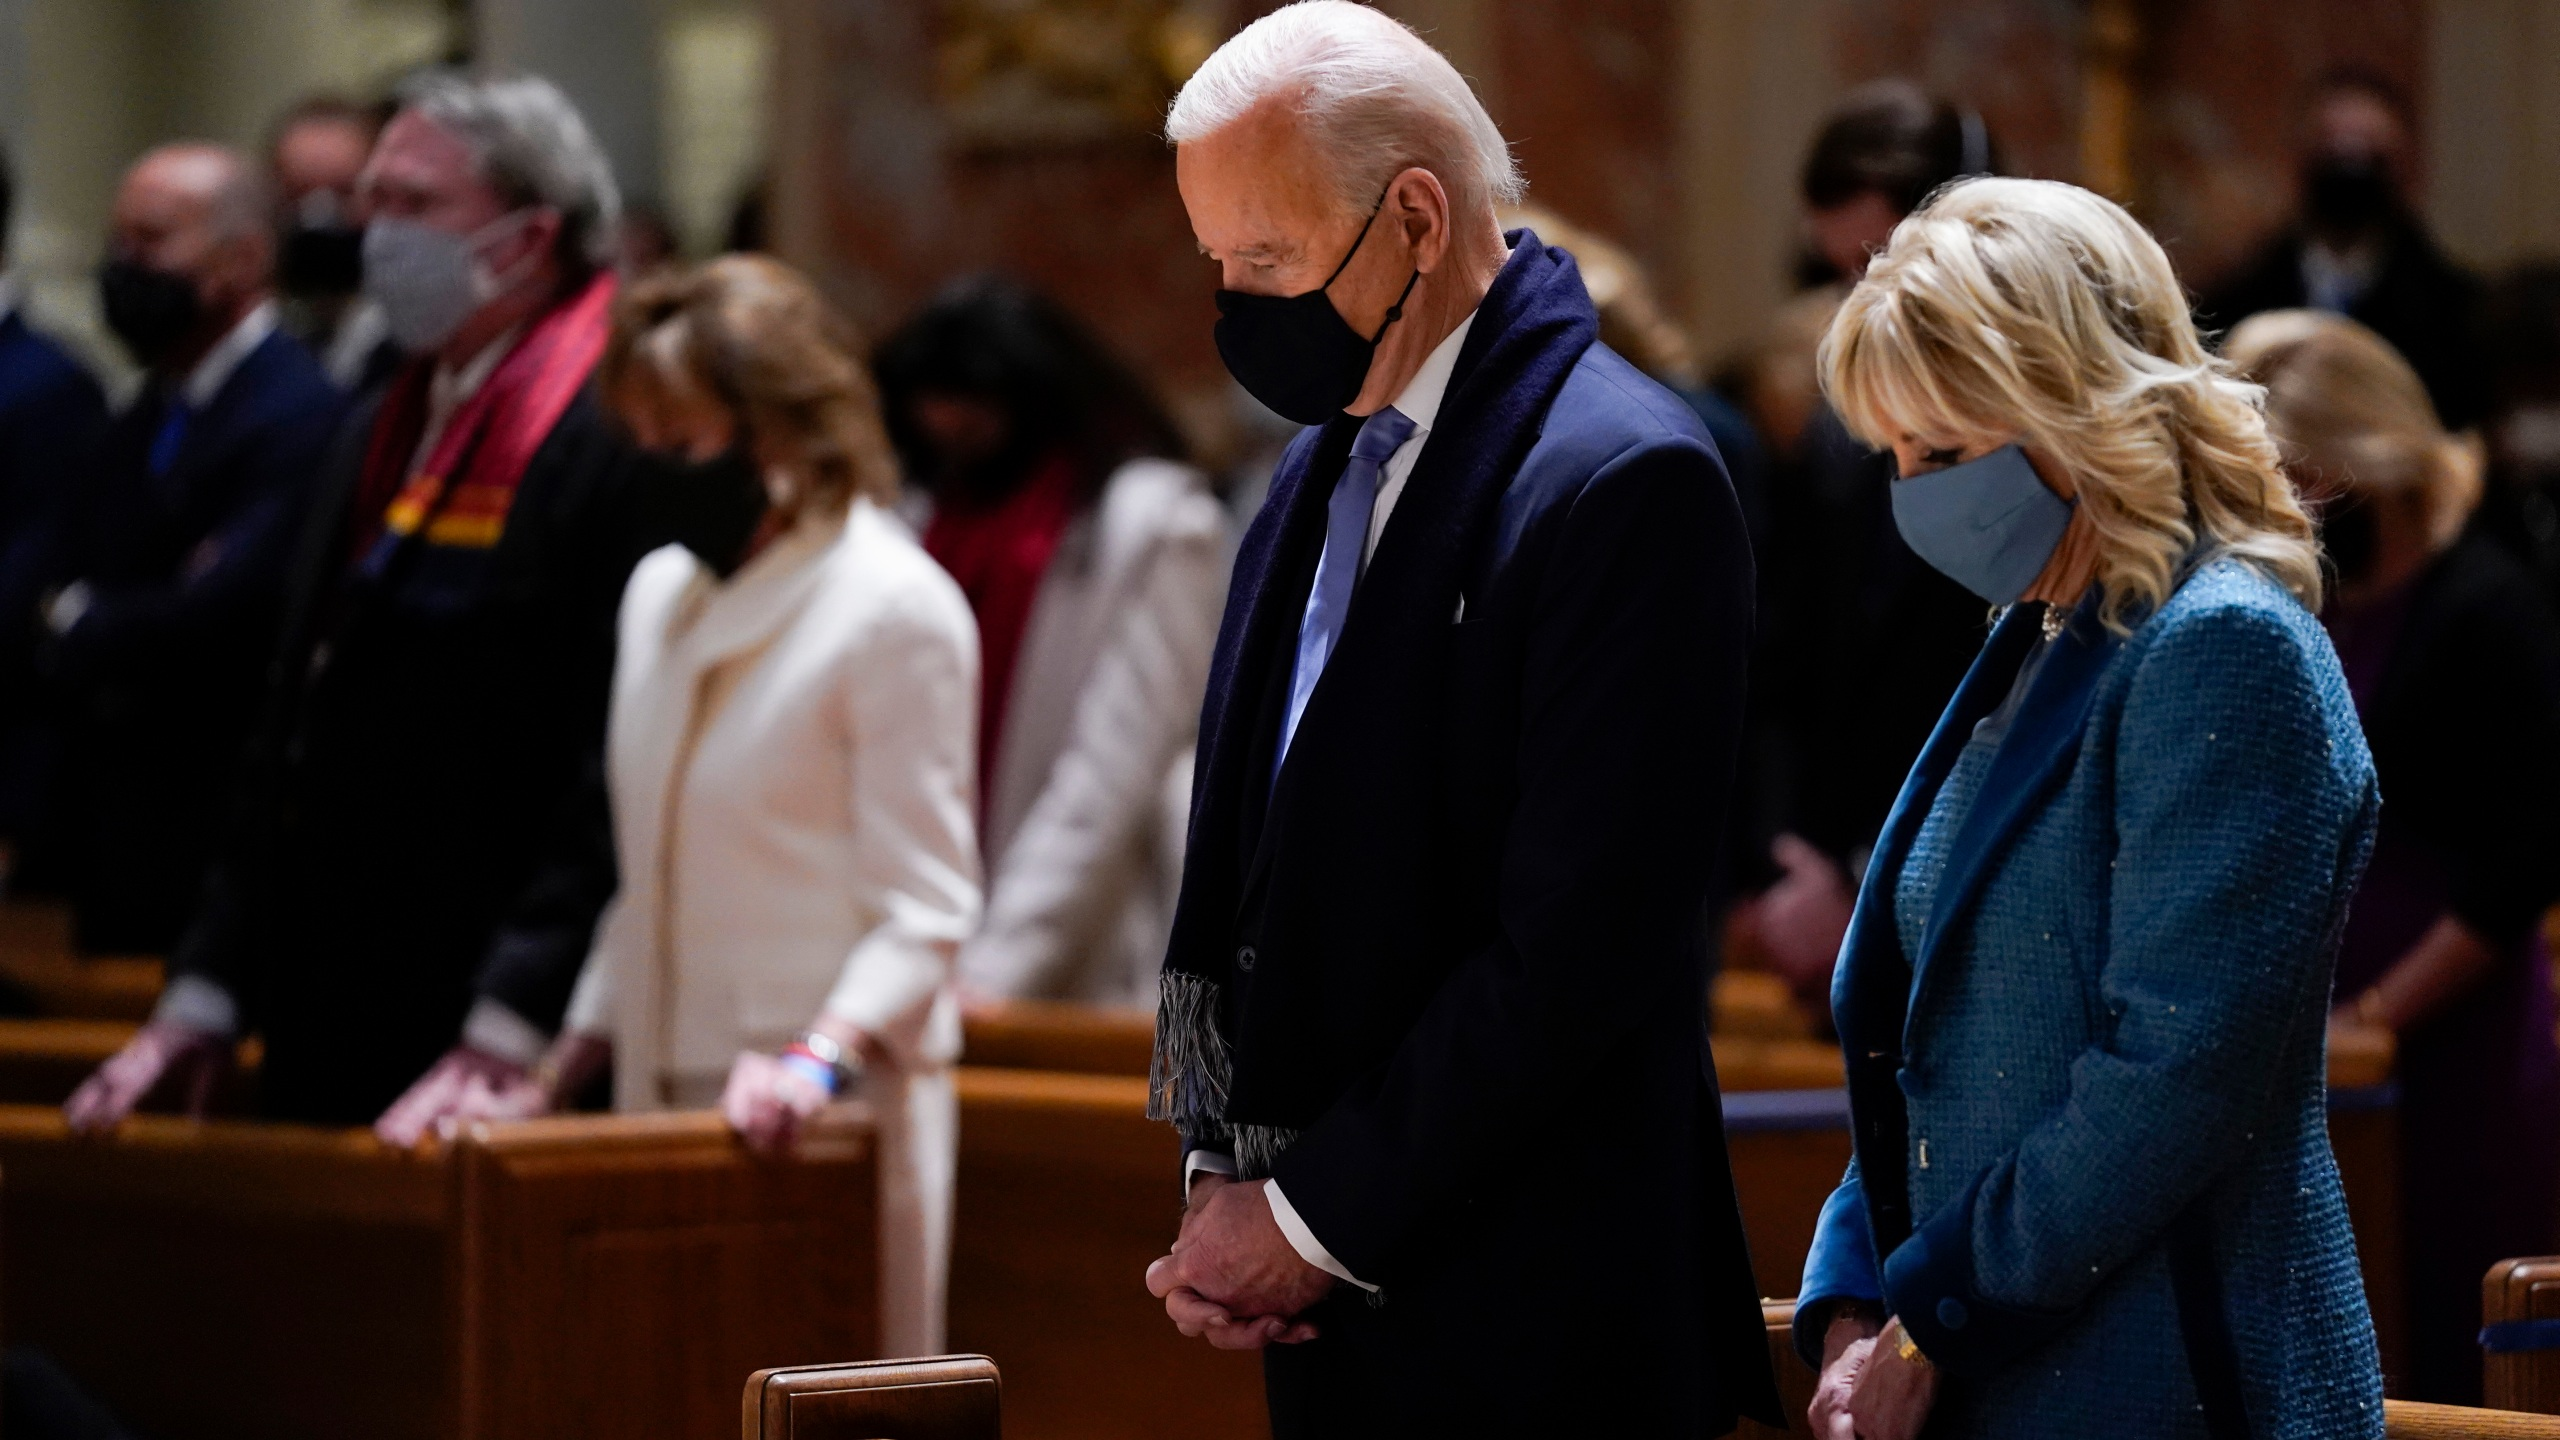 In this Wednesday, Jan. 20, 2021 file photo, President-elect Joe Biden and his wife, Jill Biden, attend Mass at the Cathedral of St. Matthew the Apostle during Inauguration Day ceremonies in Washington. When U.S. Catholic bishops hold their next national meeting in June 2021, they'll be deciding whether to send a tougher-than-ever message to President Joe Biden and other Catholic politicians: Don't partake of Communion if you persist in public advocacy of abortion rights.(AP Photo/Evan Vucci)